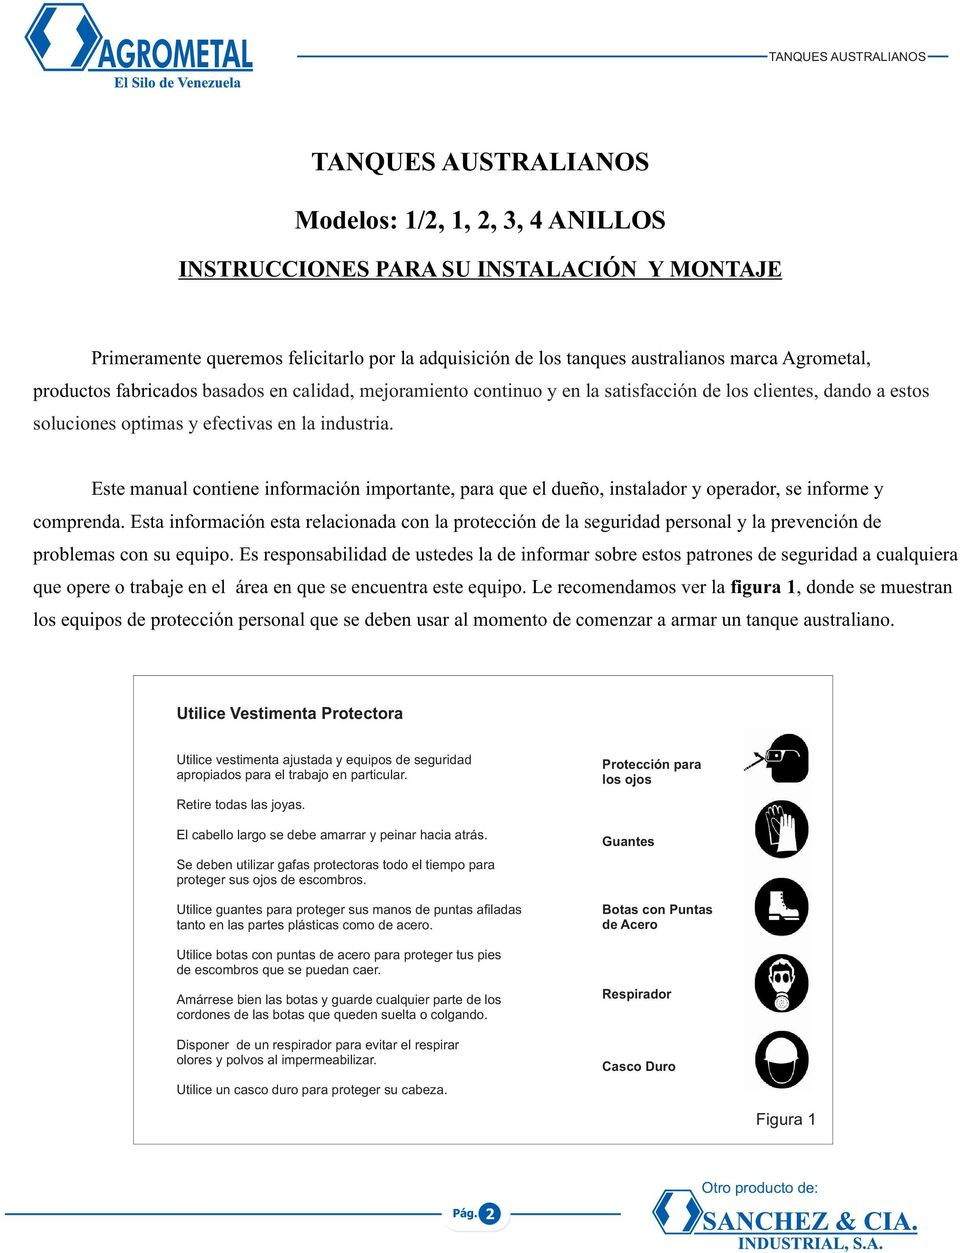 MANUAL DE MONTAJE TANQUES AUSTRALIANOS - PDF